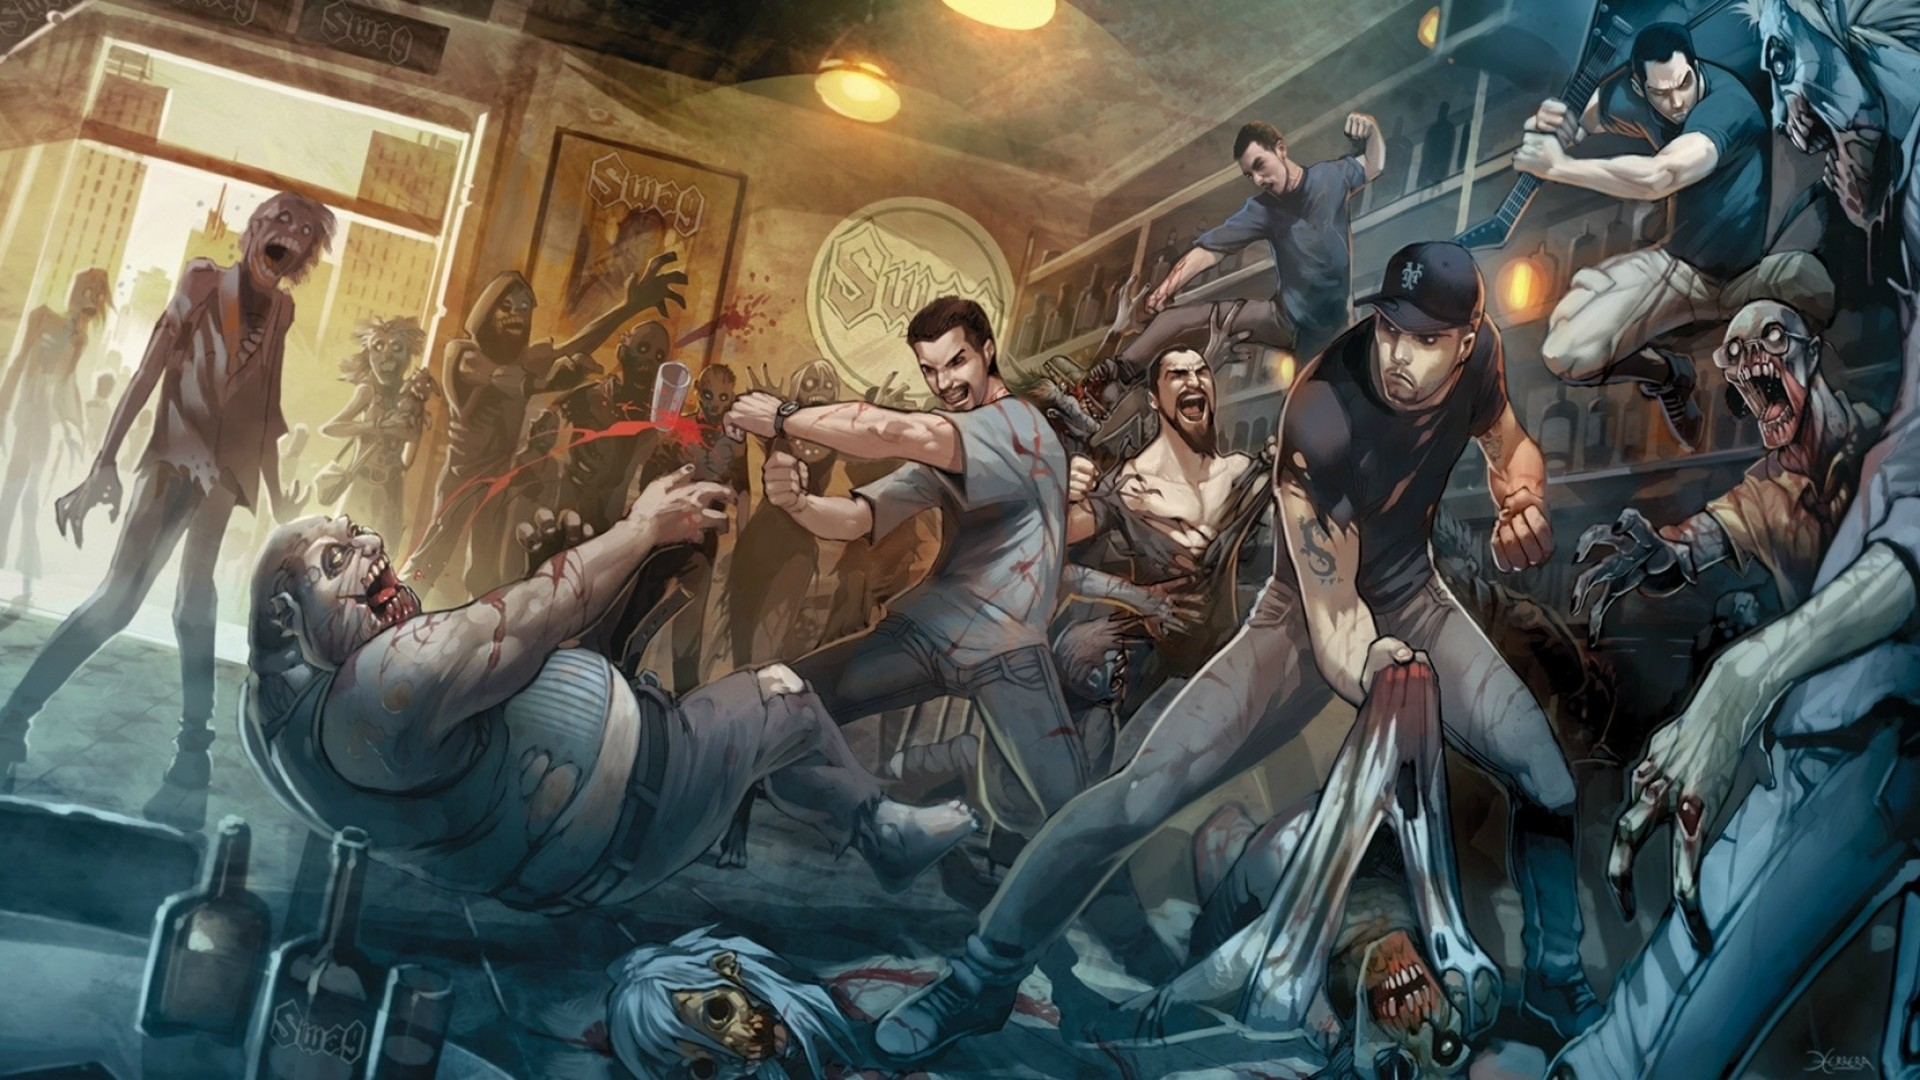 Zombie Wallpaper 1080p 79 Pictures